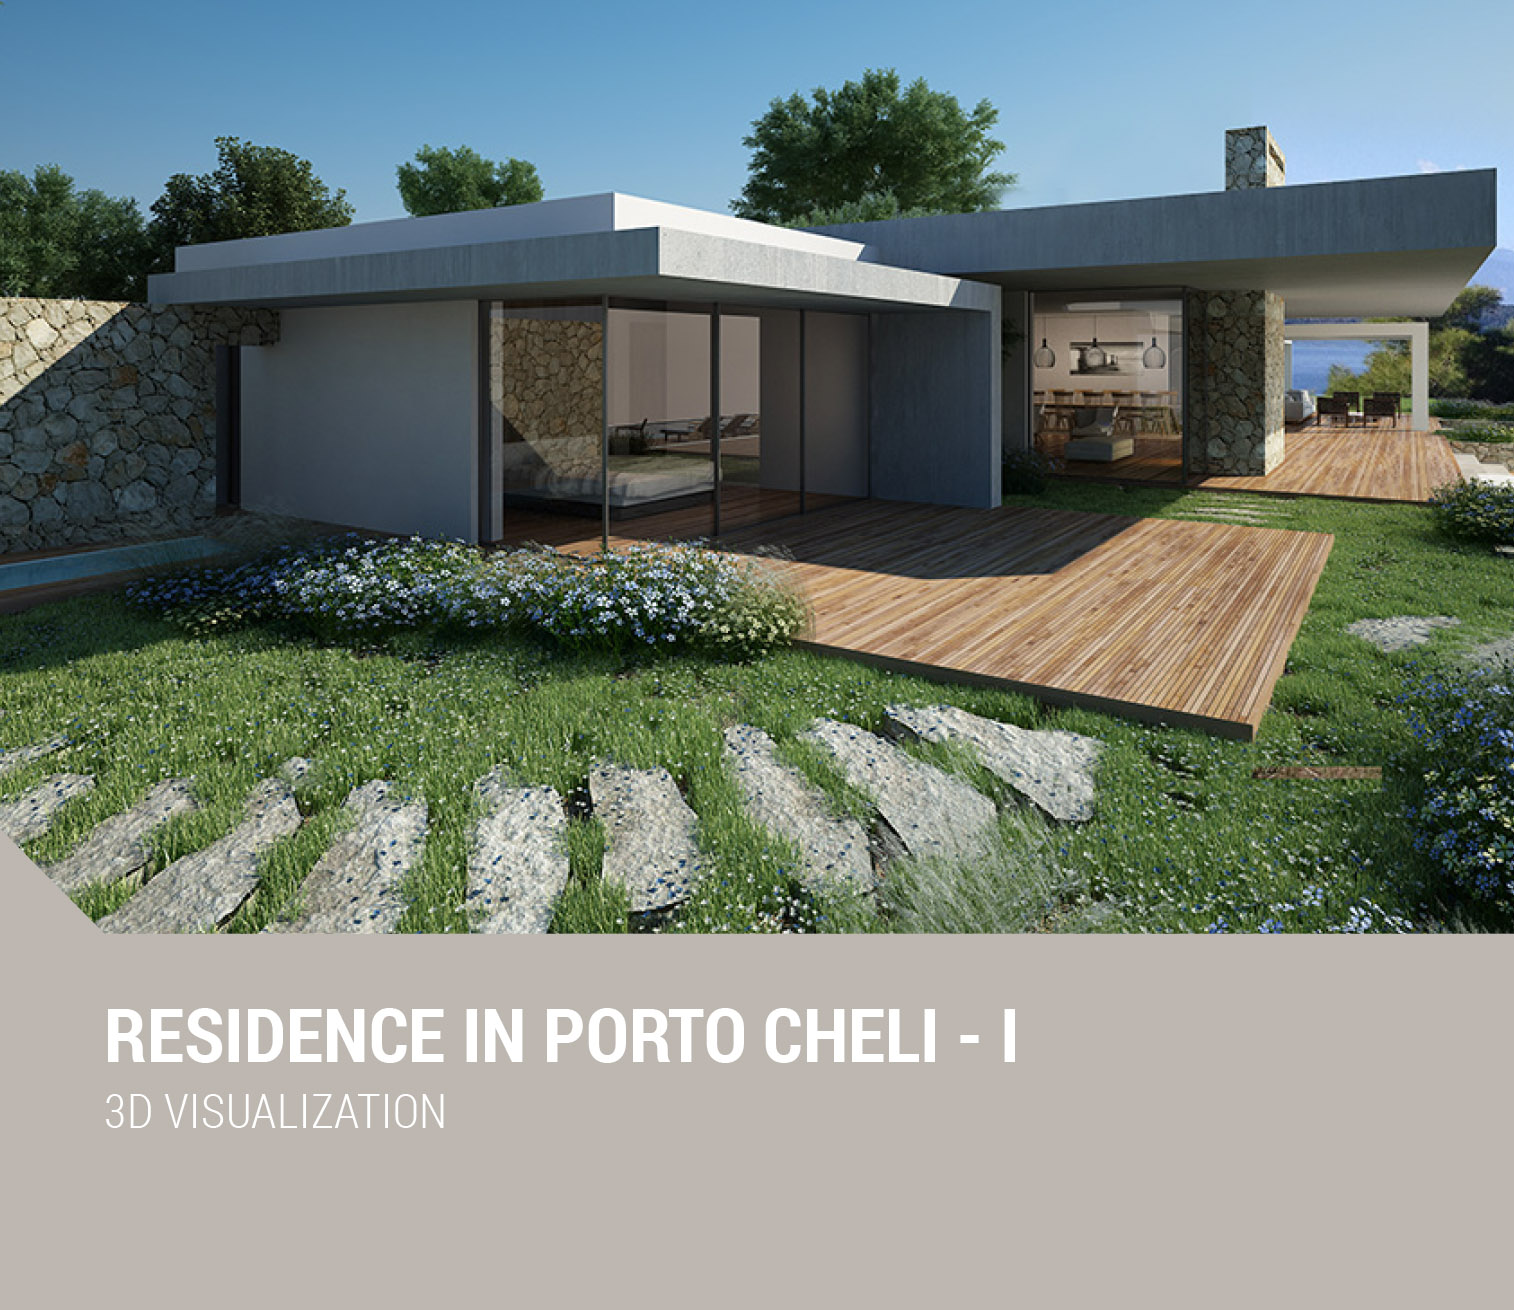 Schema Dimitra Chrona designer, creative director, architectural, 3D visualization, 3D Rendering, branding websites, digital, graphic design, interior design, real estate, luxury property, staging, museum, virtual, art, brochures, exhibitions, logotype, logo, Canada Quebec Montreal Athens Greece schema design porto cheli residence i small.jpg